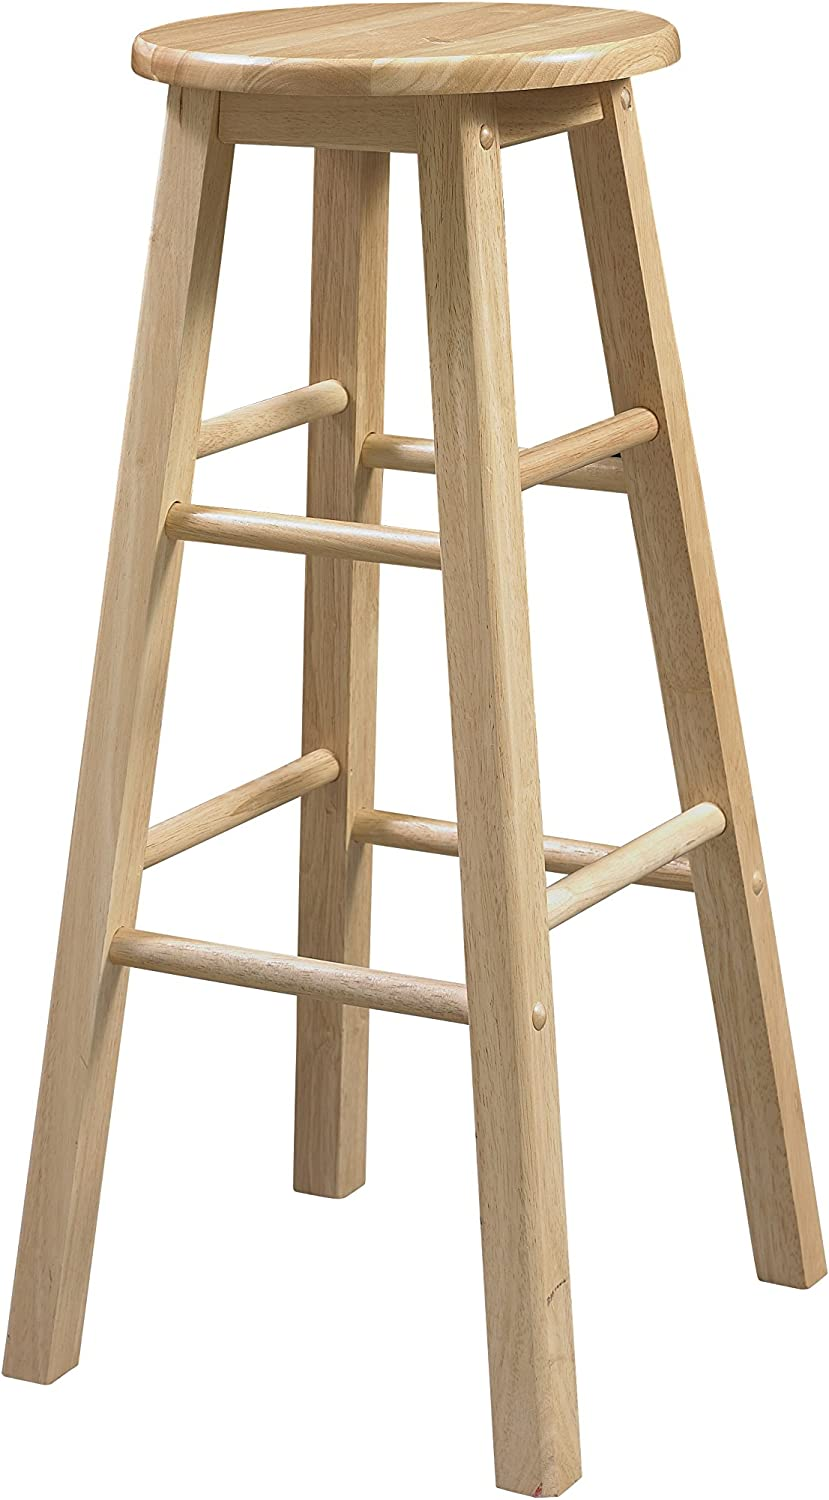 Linon 29-Inch Barstool With Attention brand Round Seat ! Super beauty product restock quality top!